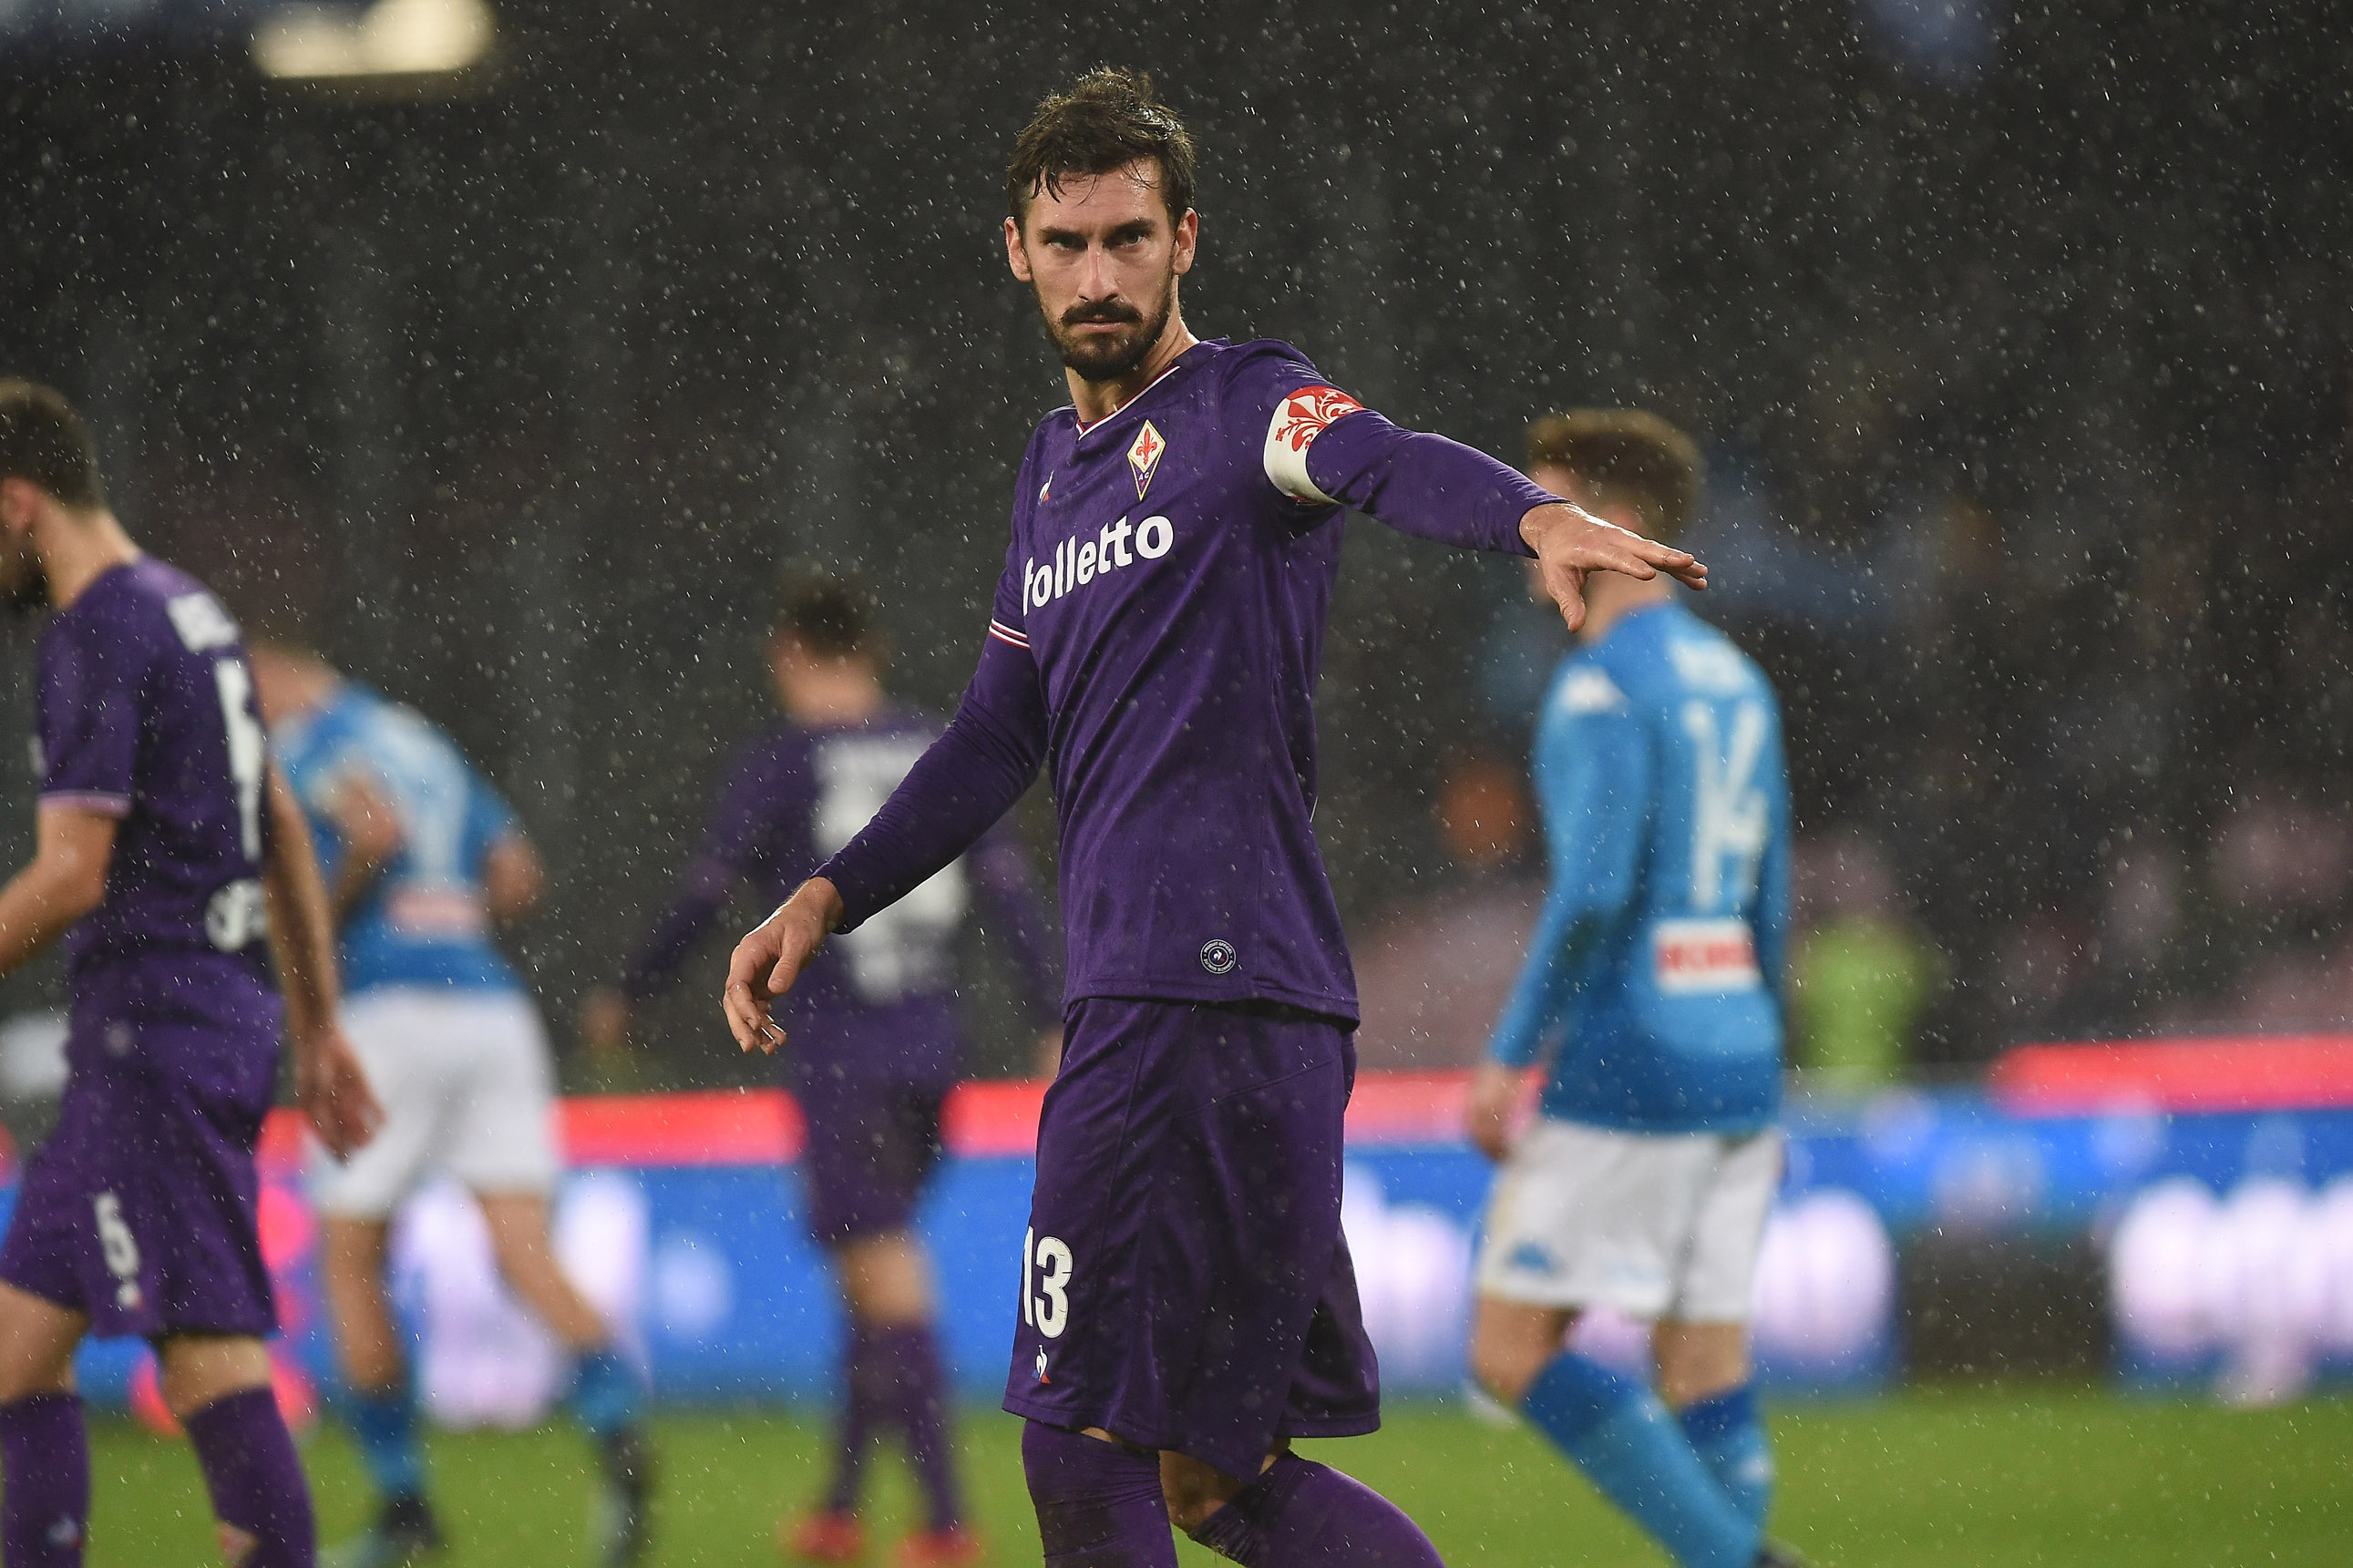 Italian soccer star Davide Astori found dead in hotel room